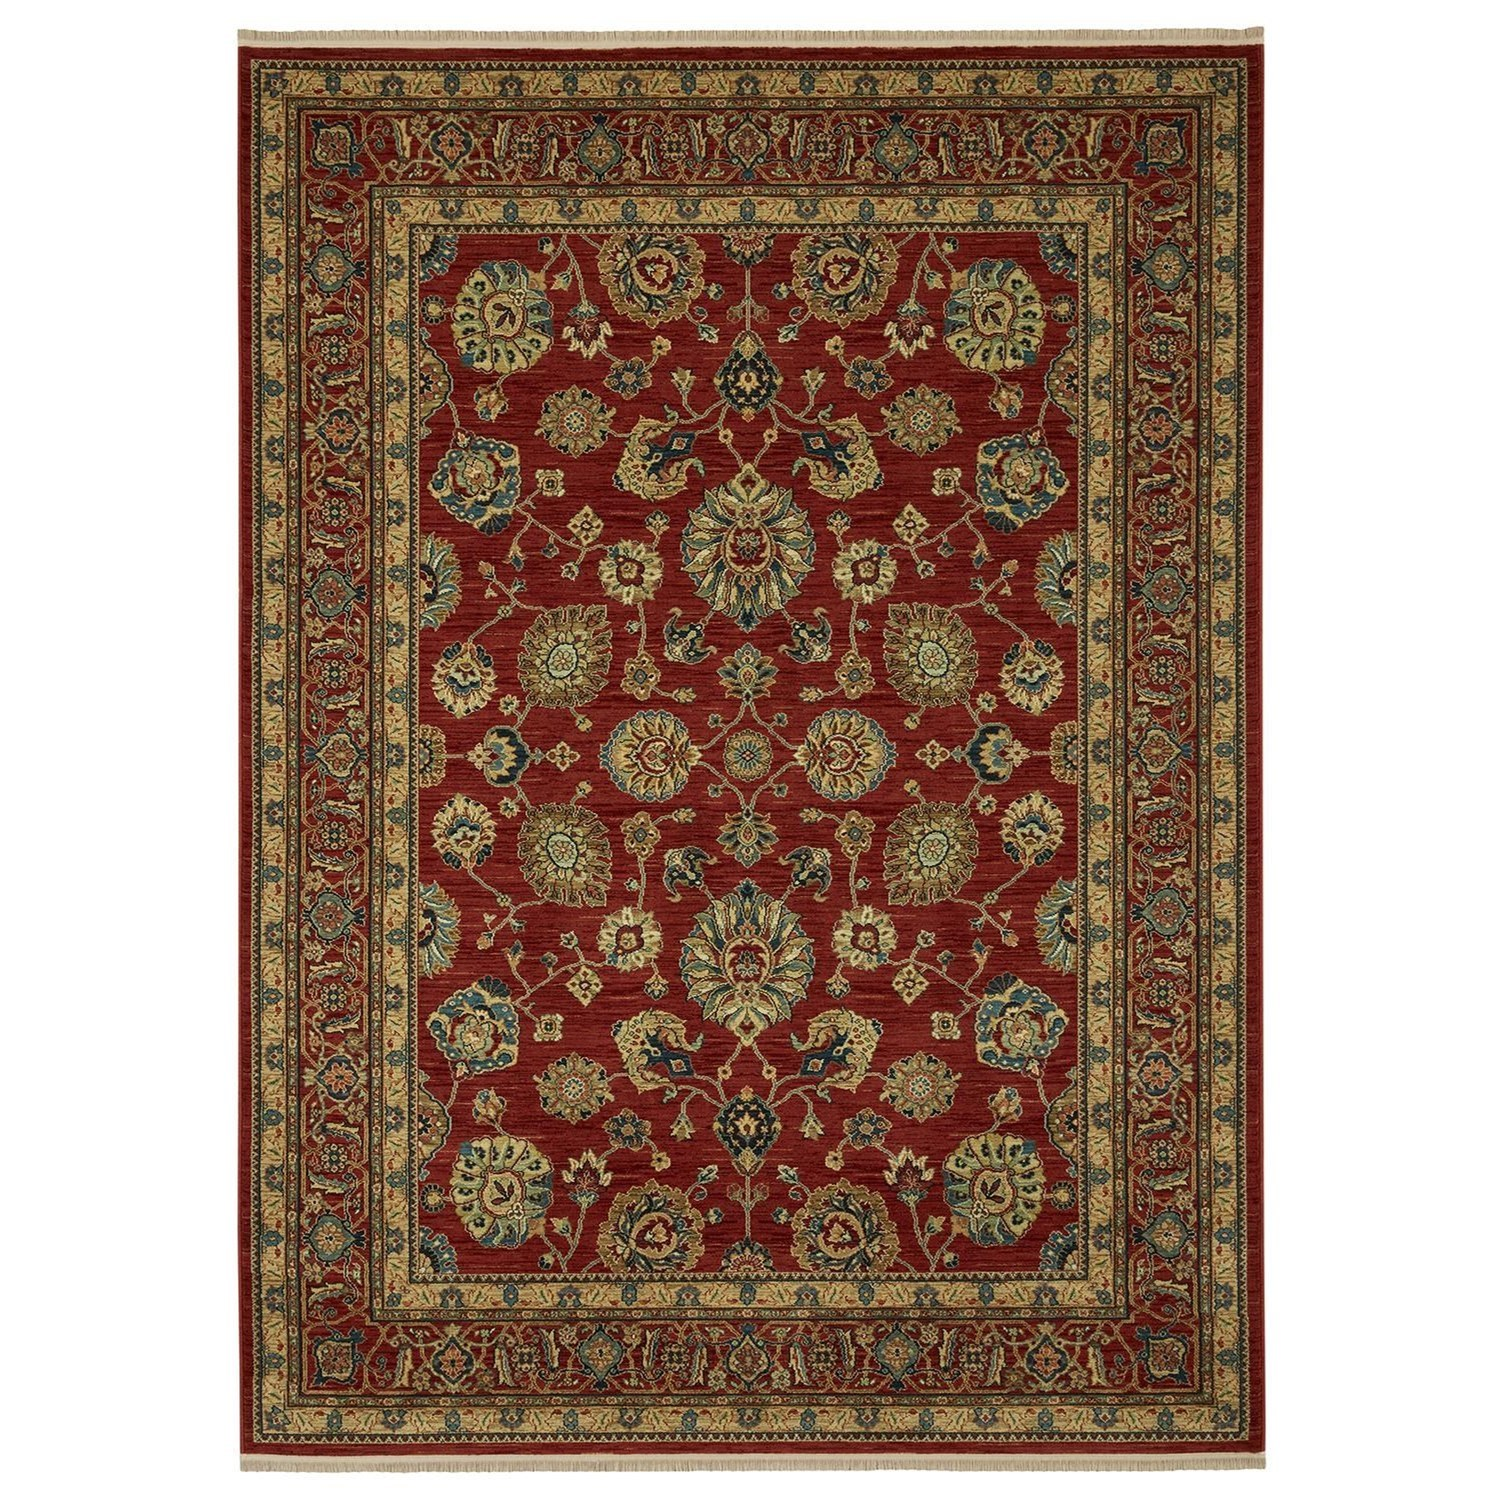 Sovereign 10'x14' Sultana Red Rug by Karastan Rugs at Darvin Furniture